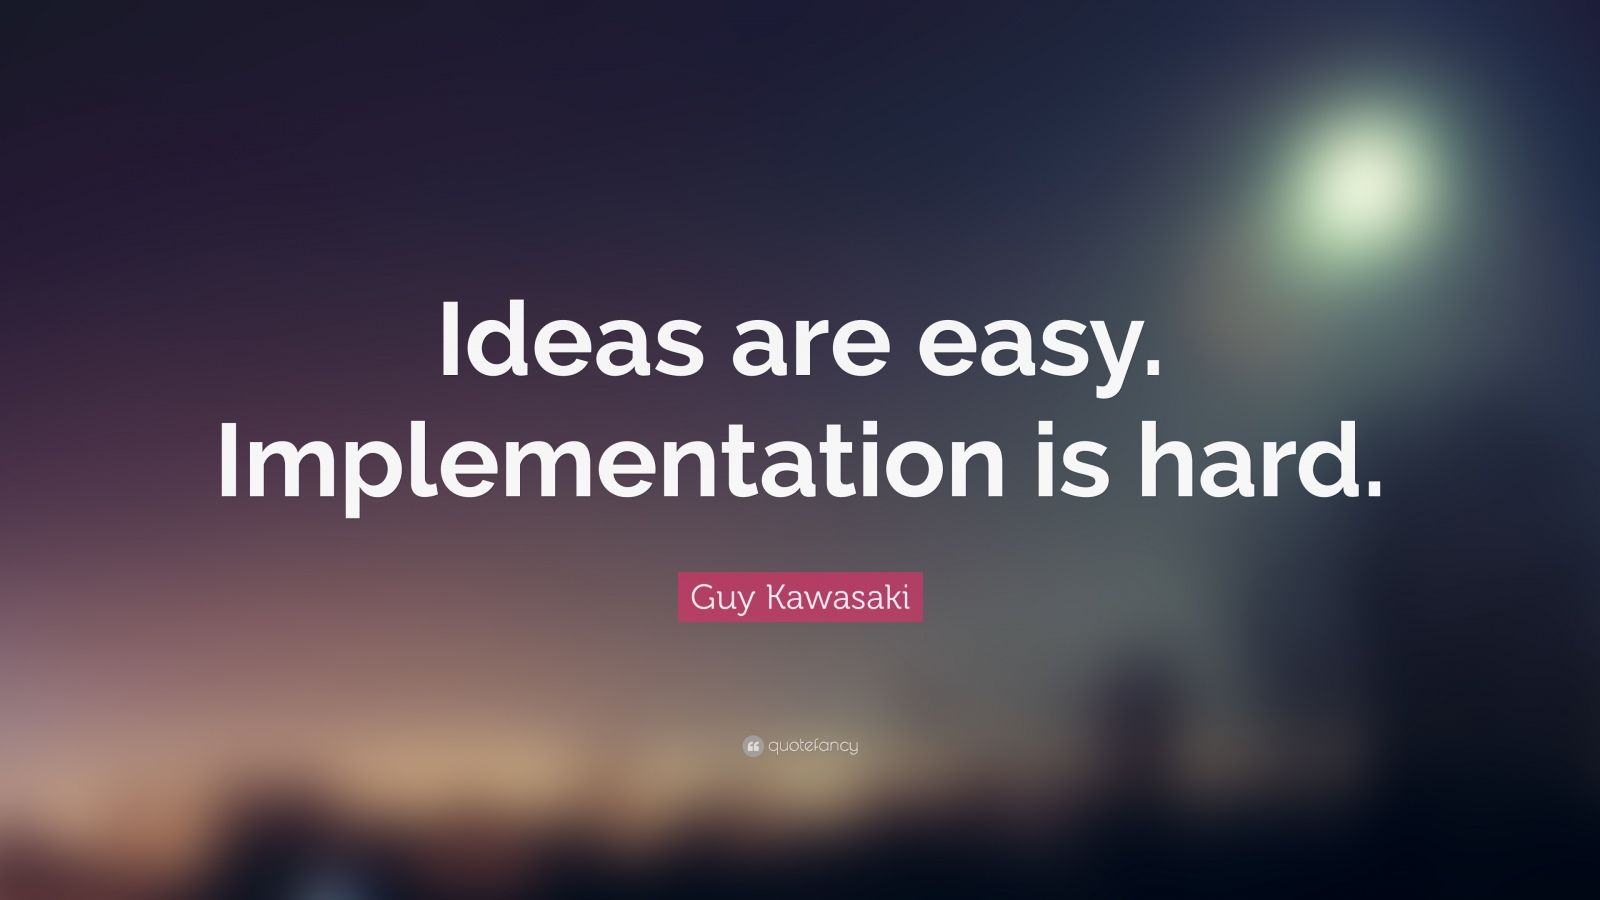 Images Of Inspiring Quotes Wallpaper Guy Kawasaki Quote Ideas Are Easy Implementation Is